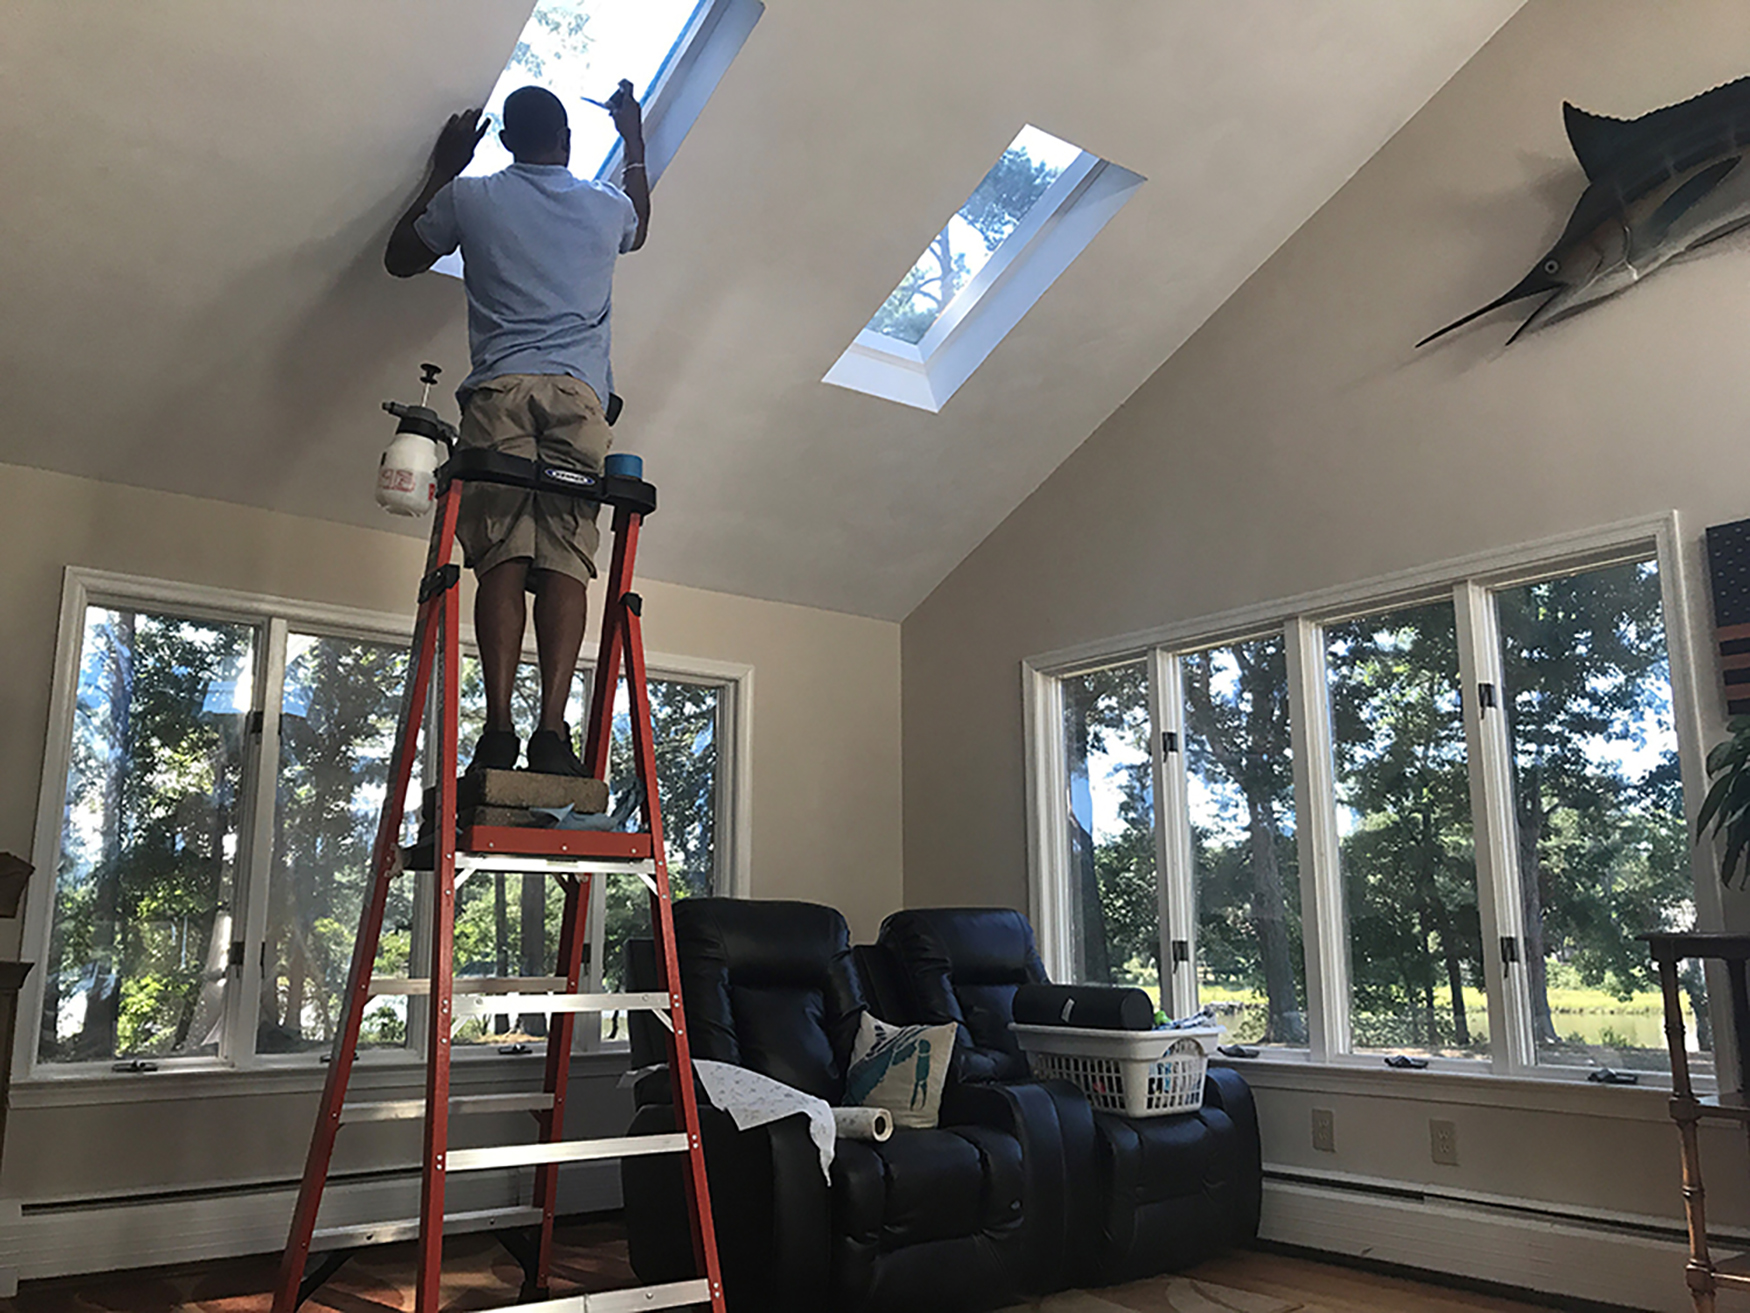 commercial window tinting chesapeake virginia, home window tinting chesapeake virginia, security film chesapeake, decorative film chesapeake